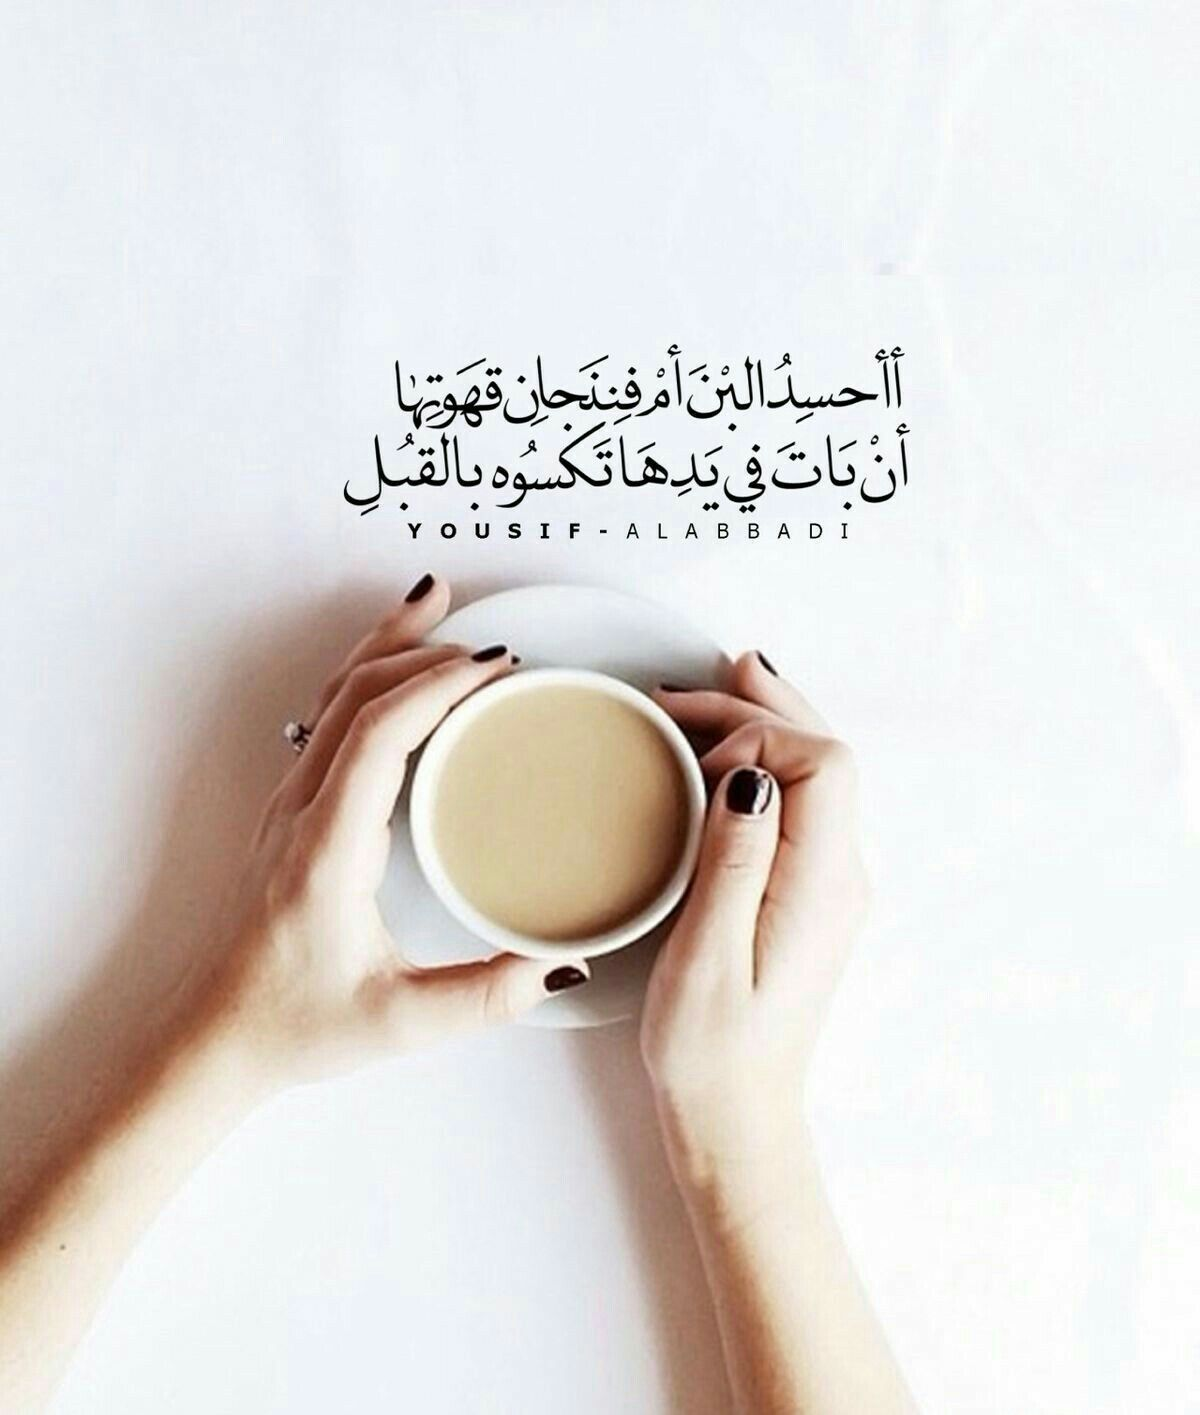 Pin By Aliah On صور للقهوة Coffee Love Quotes Wallpaper Photo Quotes Coffee Quotes